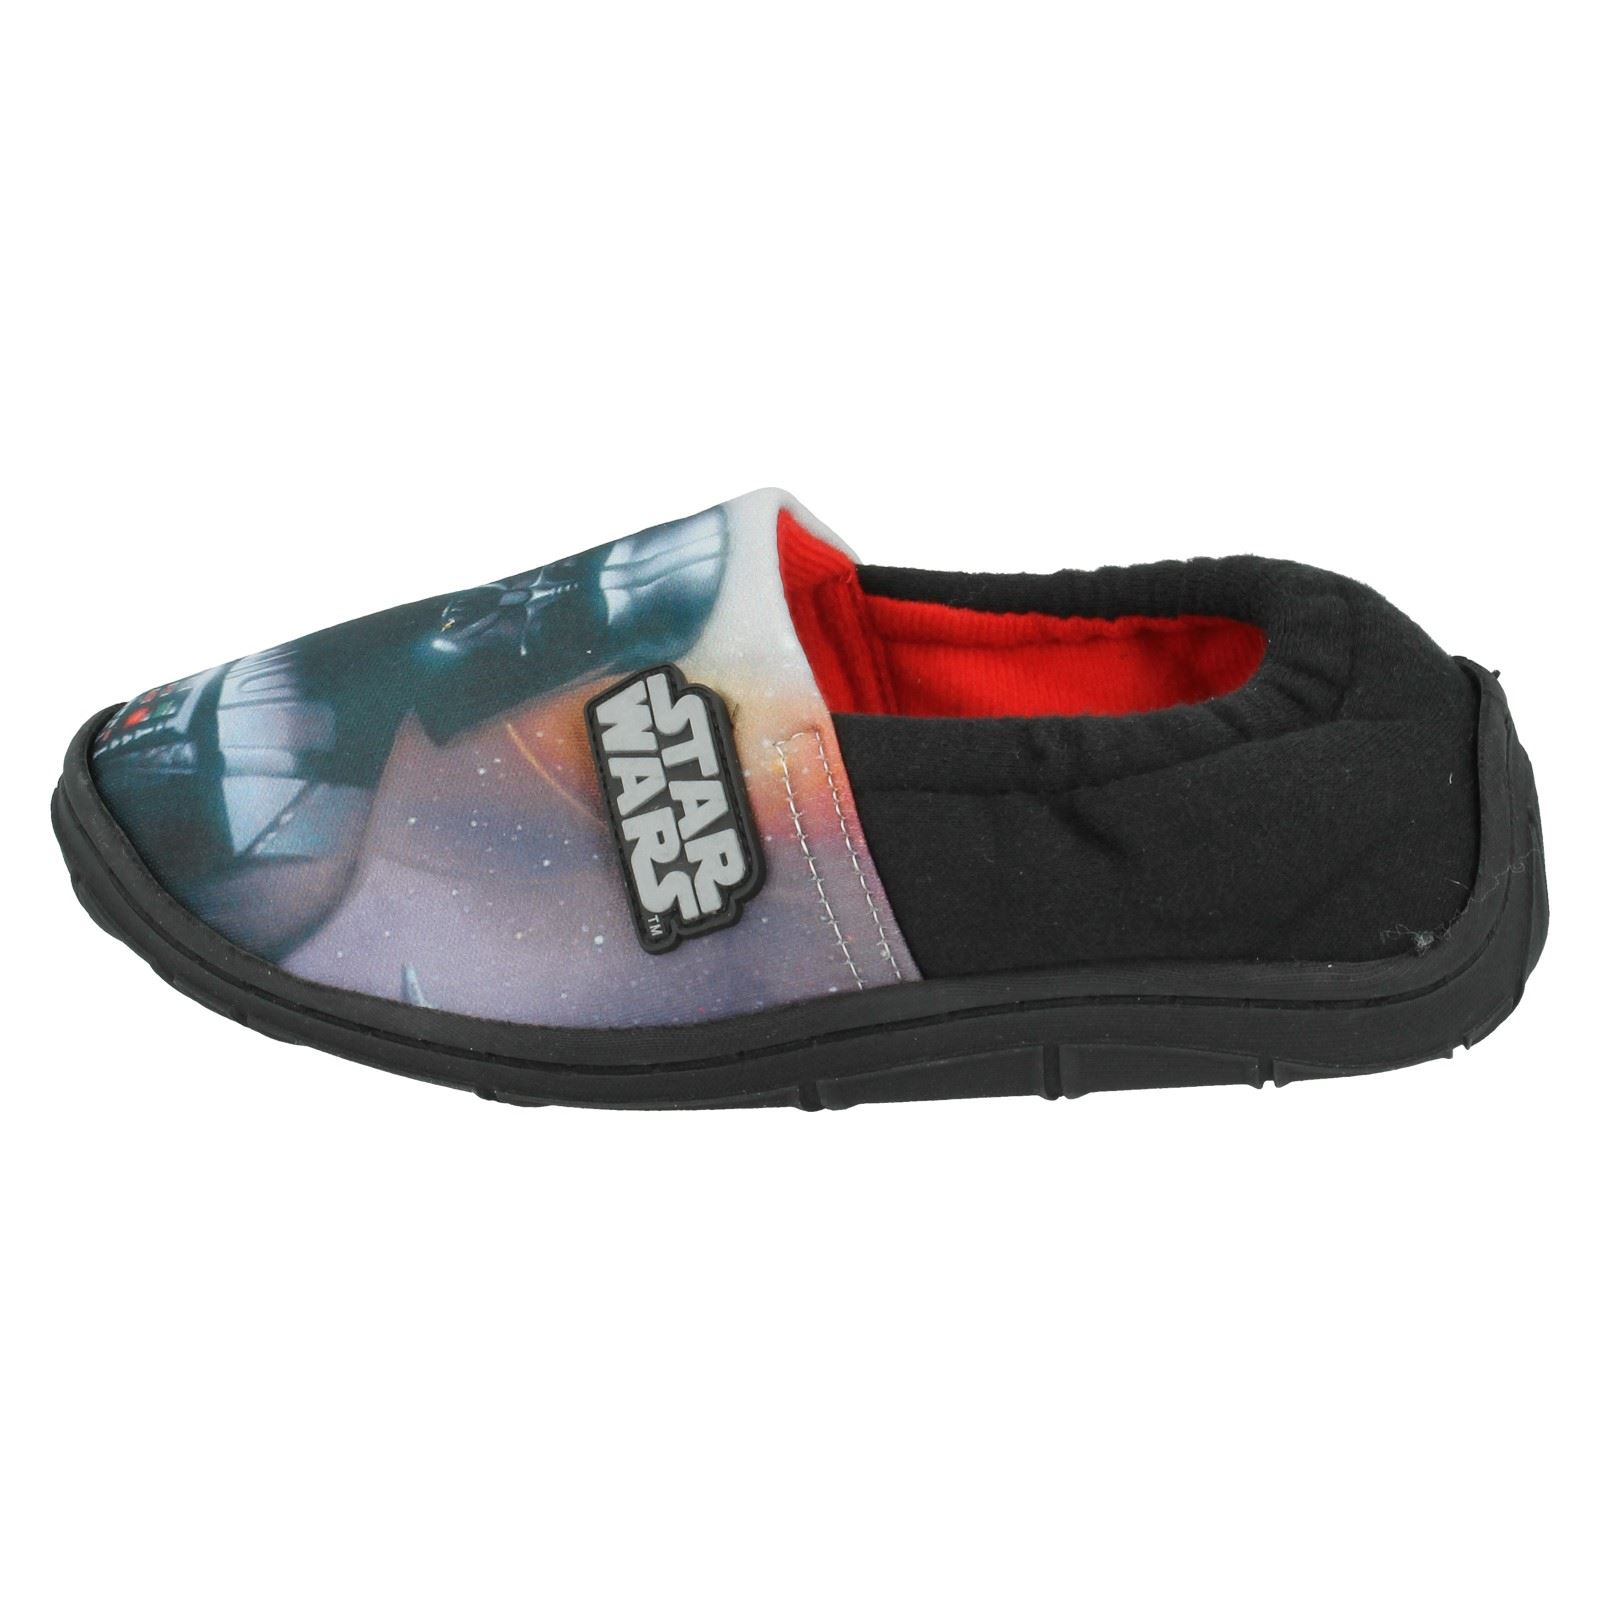 Darth Vader Juniors Slipper el estilo-Disney